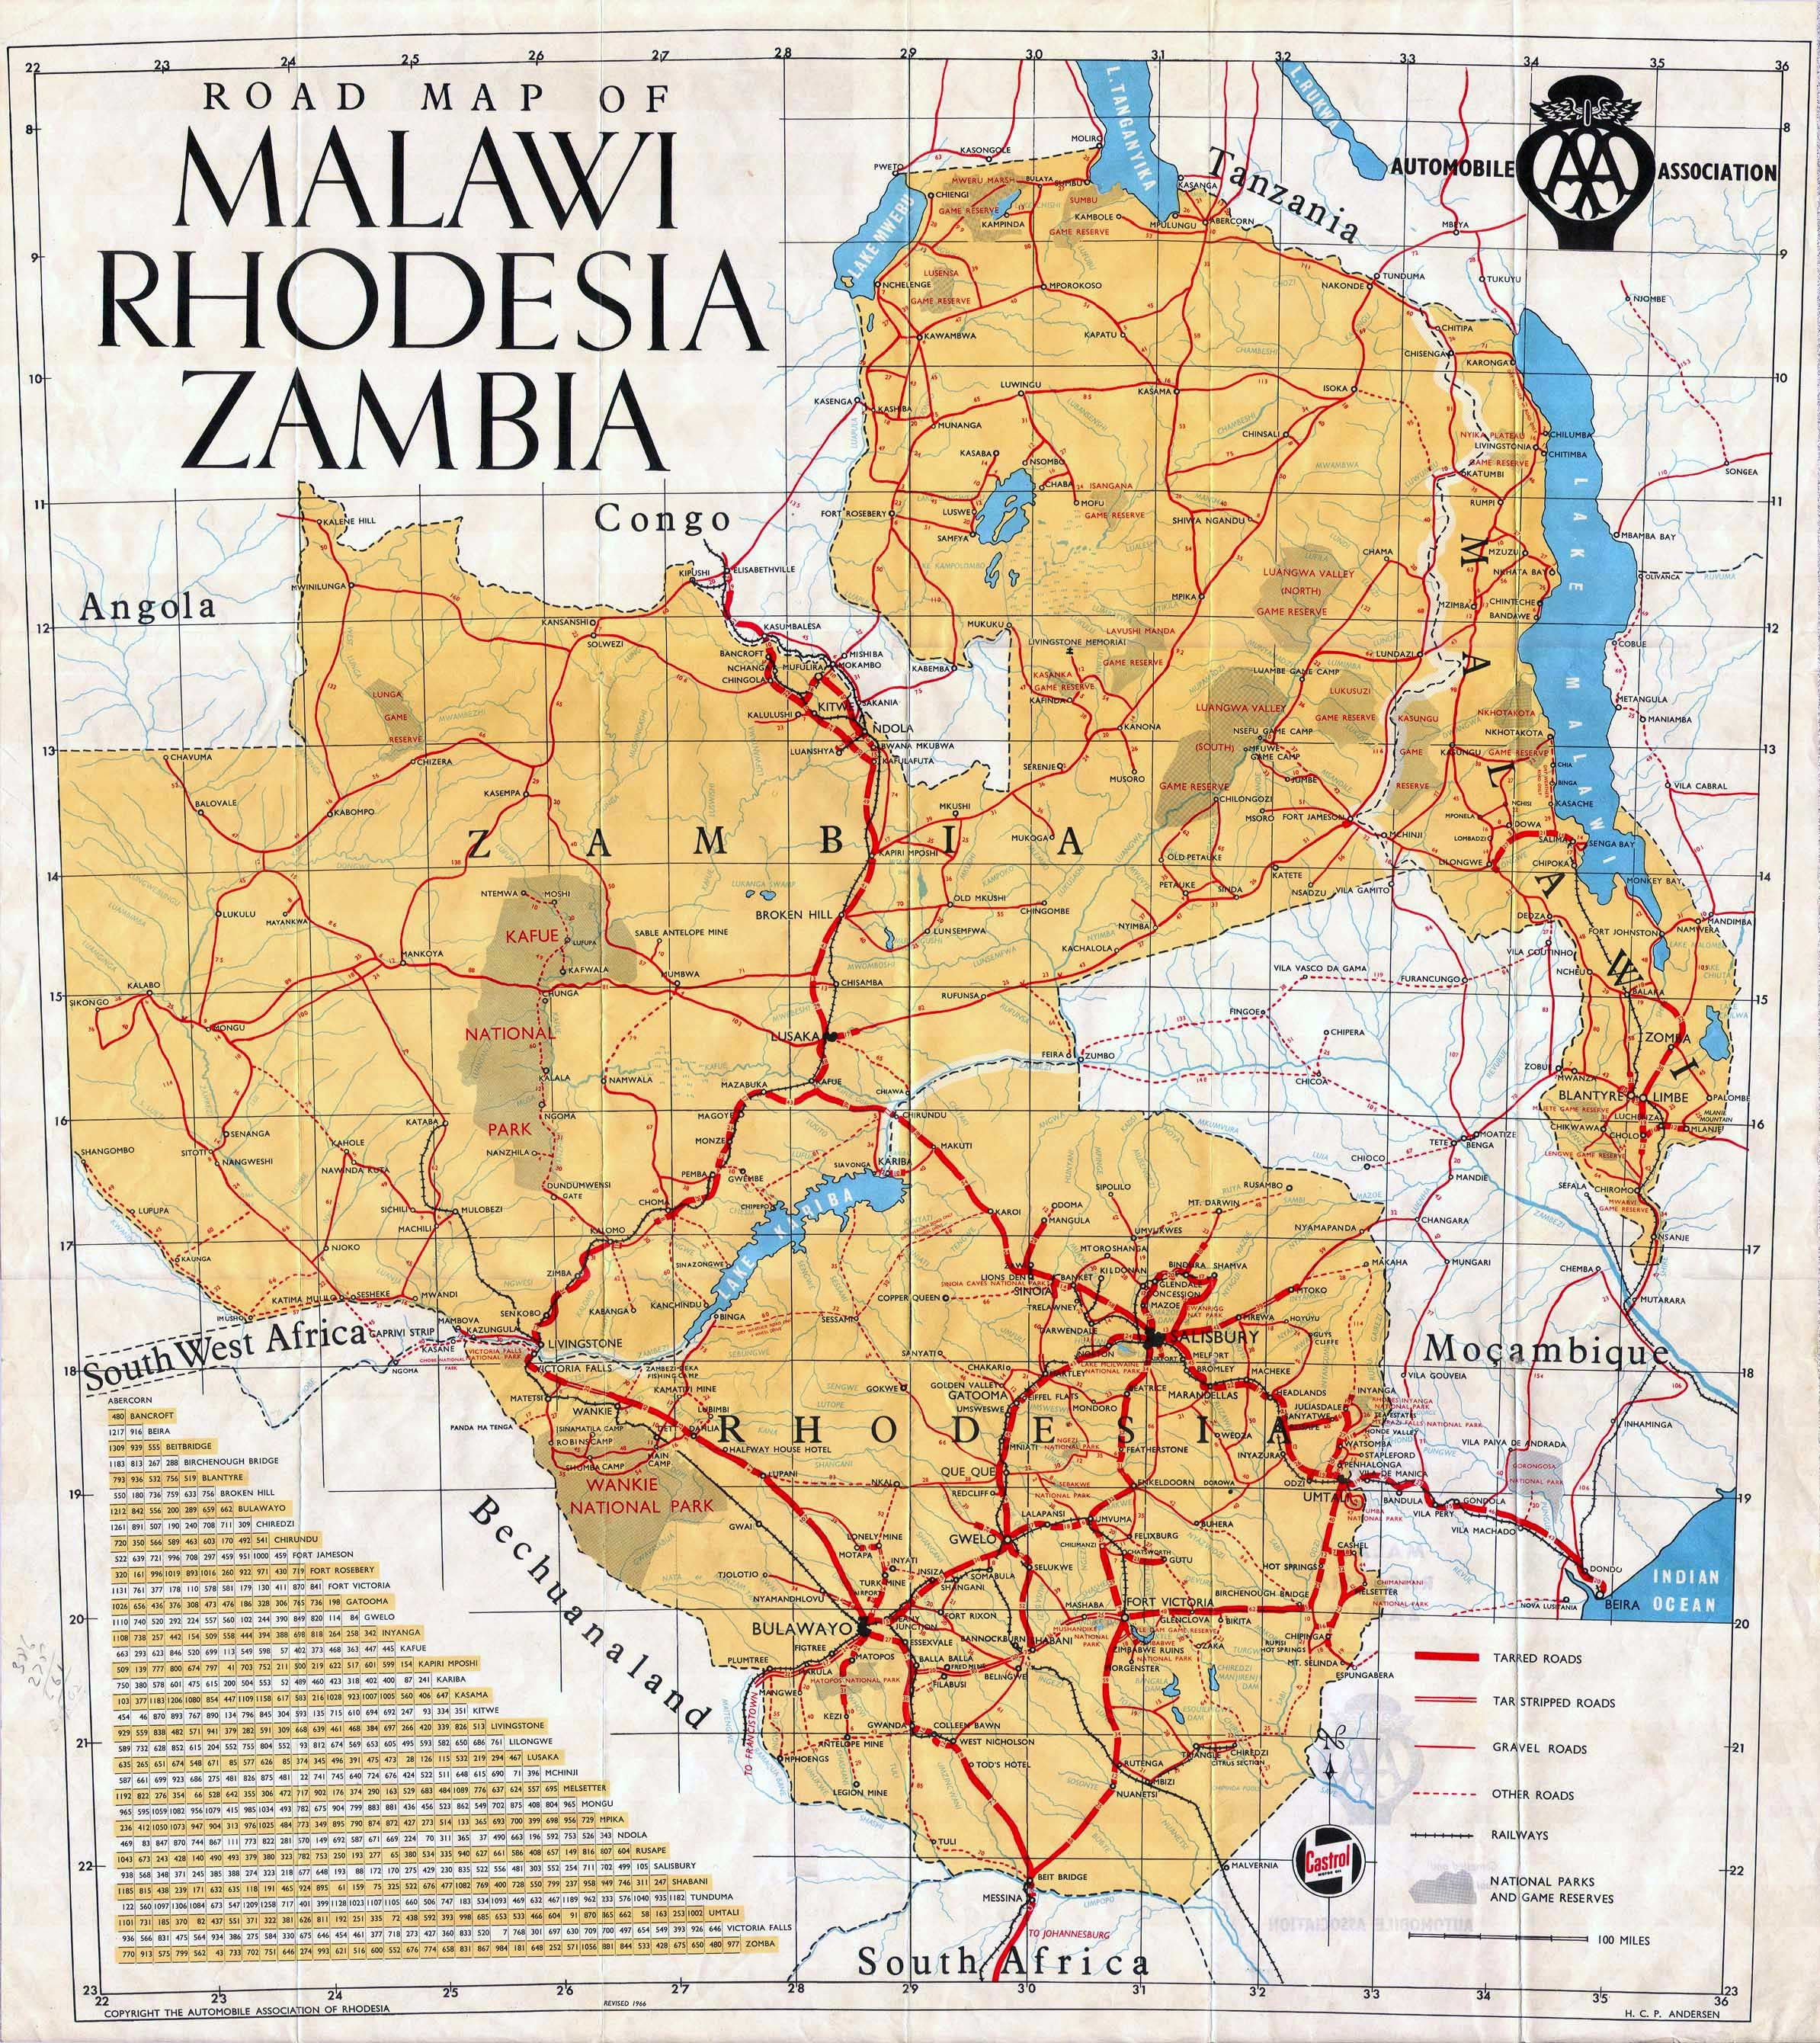 Road Map Of South Africa And Zambia Malawi Rhodesia and Zambia Road Map   Malawi Africa | Malawi